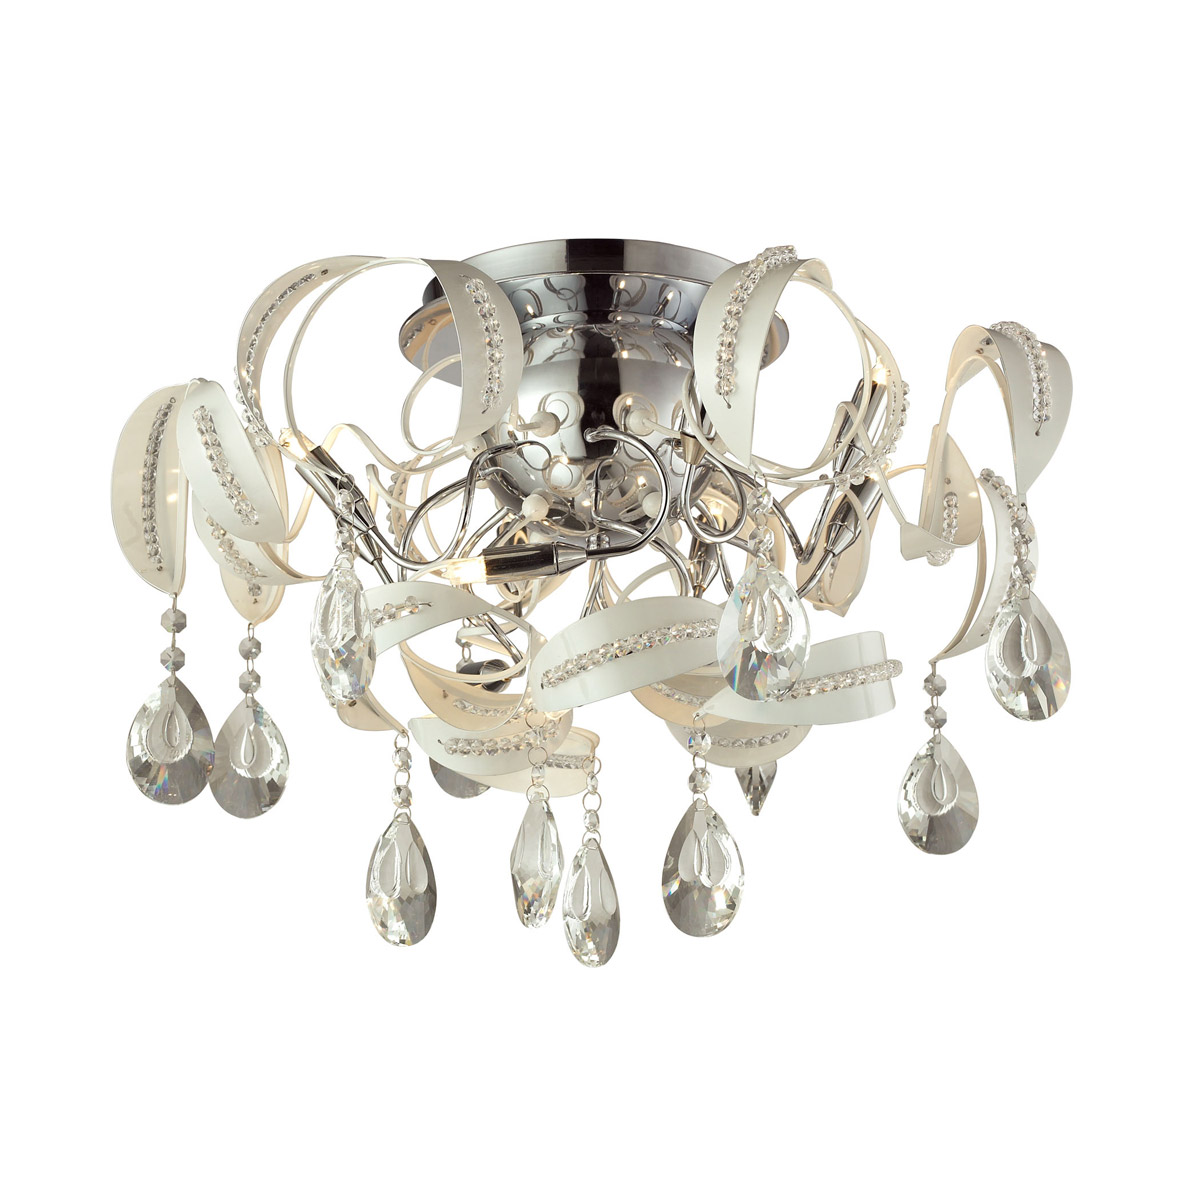 Zebula 31545 ELK lighting flush mount led ceiling light Brooklyn,New York by Accentuations